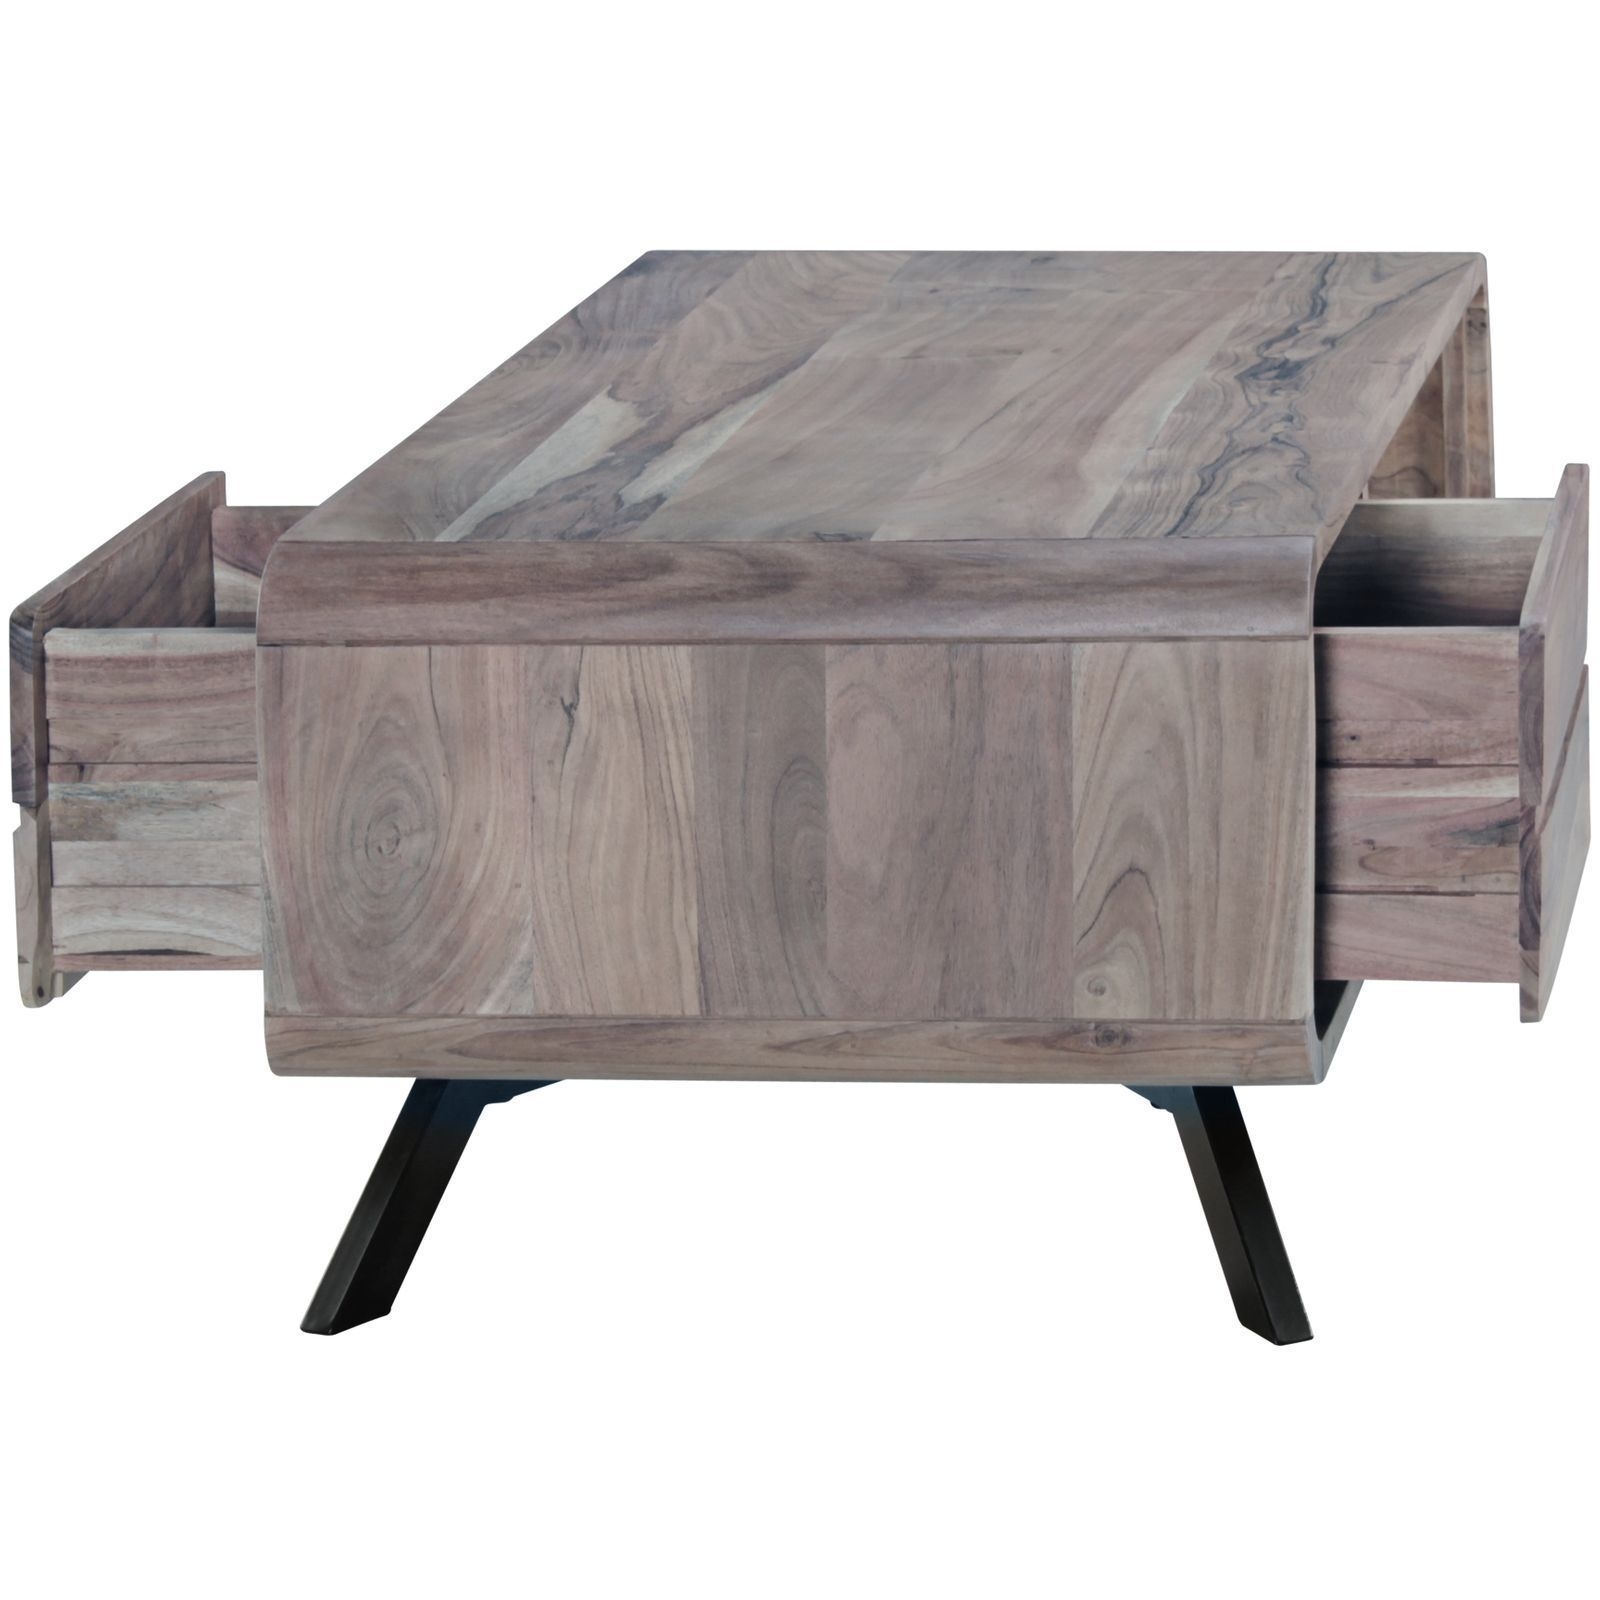 Wooden Center coffee table two way drawer Parome